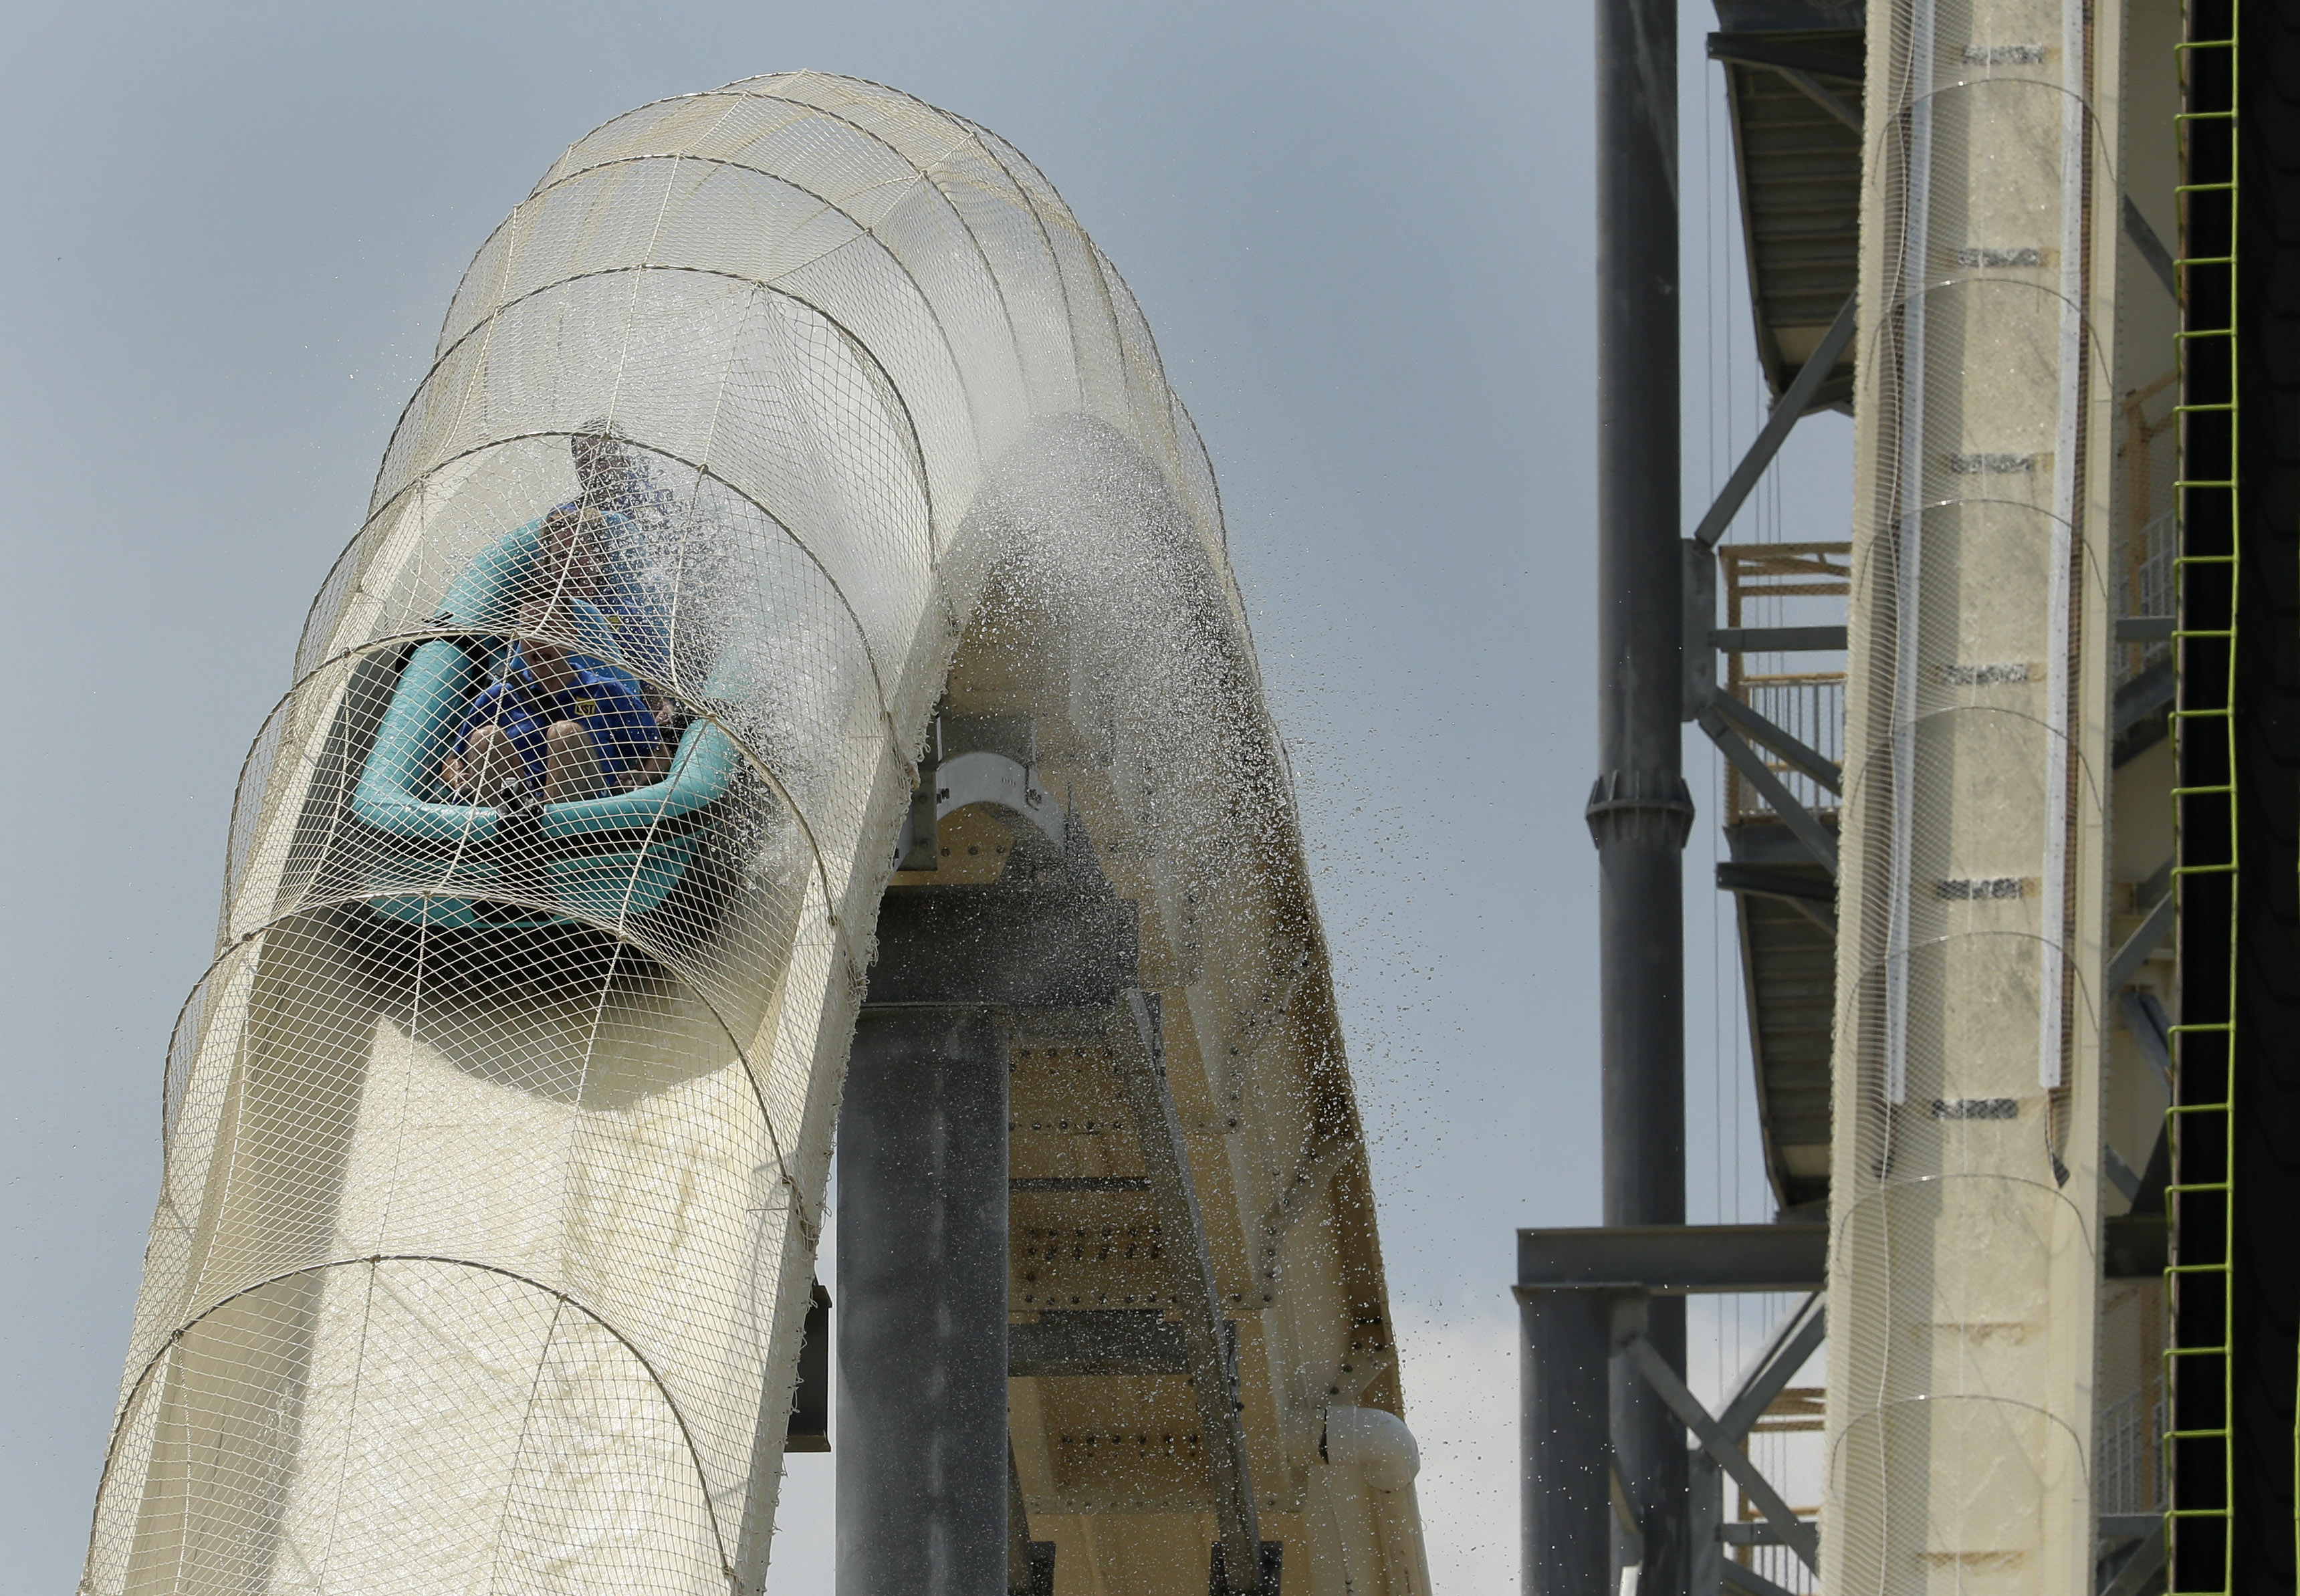 Riders are propelled by jets of water as the go over a hump while riding the world's tallest water slide called  Verruckt  at Schlitterbahn Waterpark, on July 9, 2014, in Kansas City, Kan.